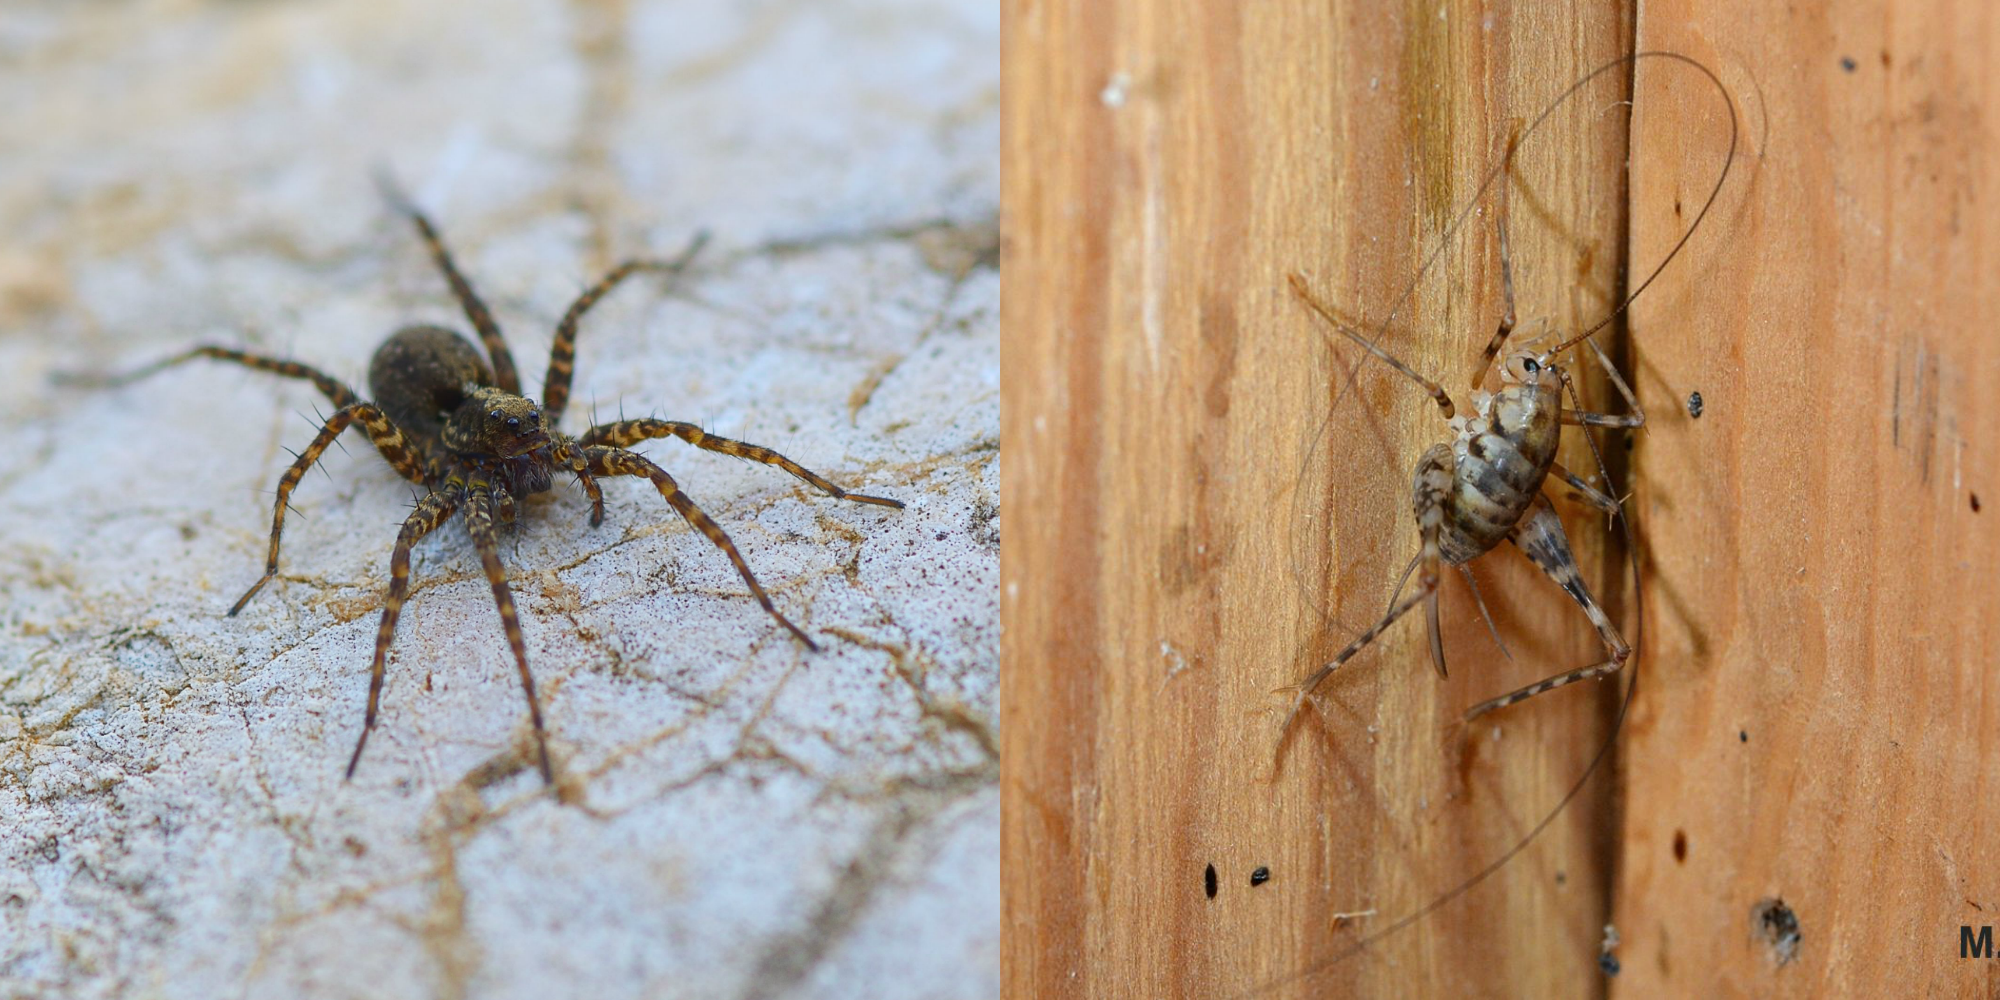 11 Common House Bugs and How to Identify Them, According to Insect Experts